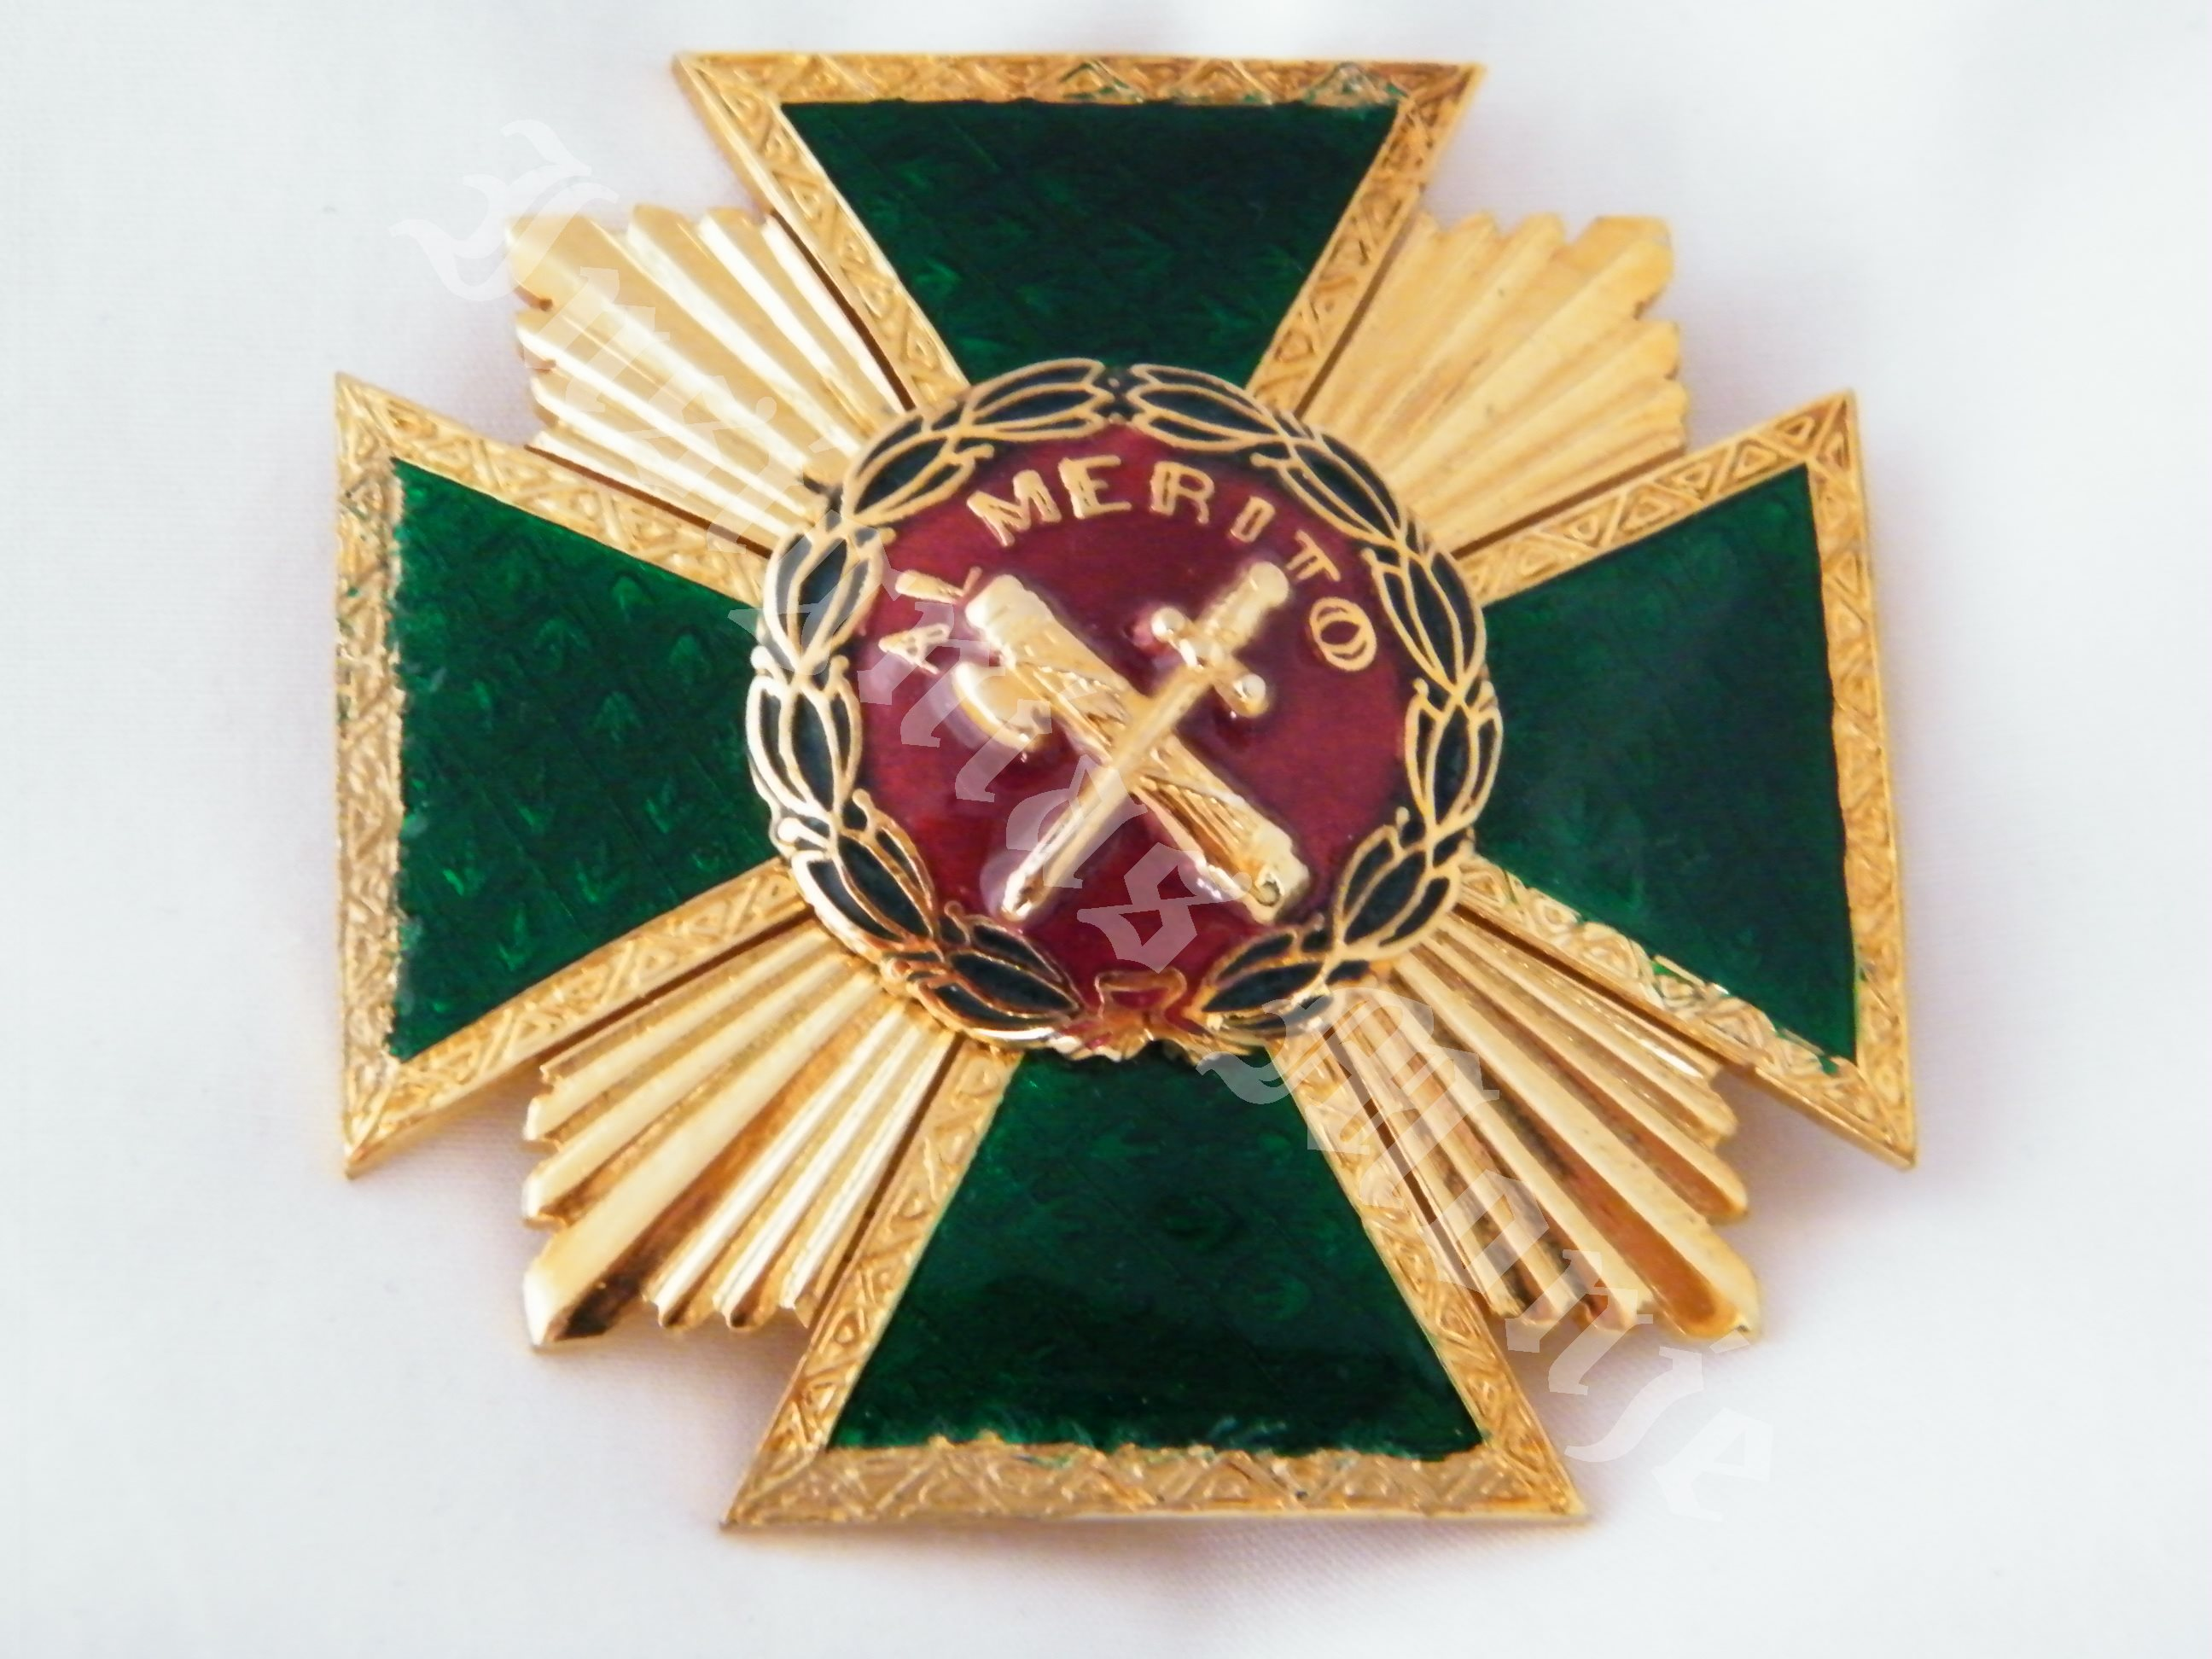 PLACA MERITO GUARDIA CIVIL DISTINTIVO ROJO